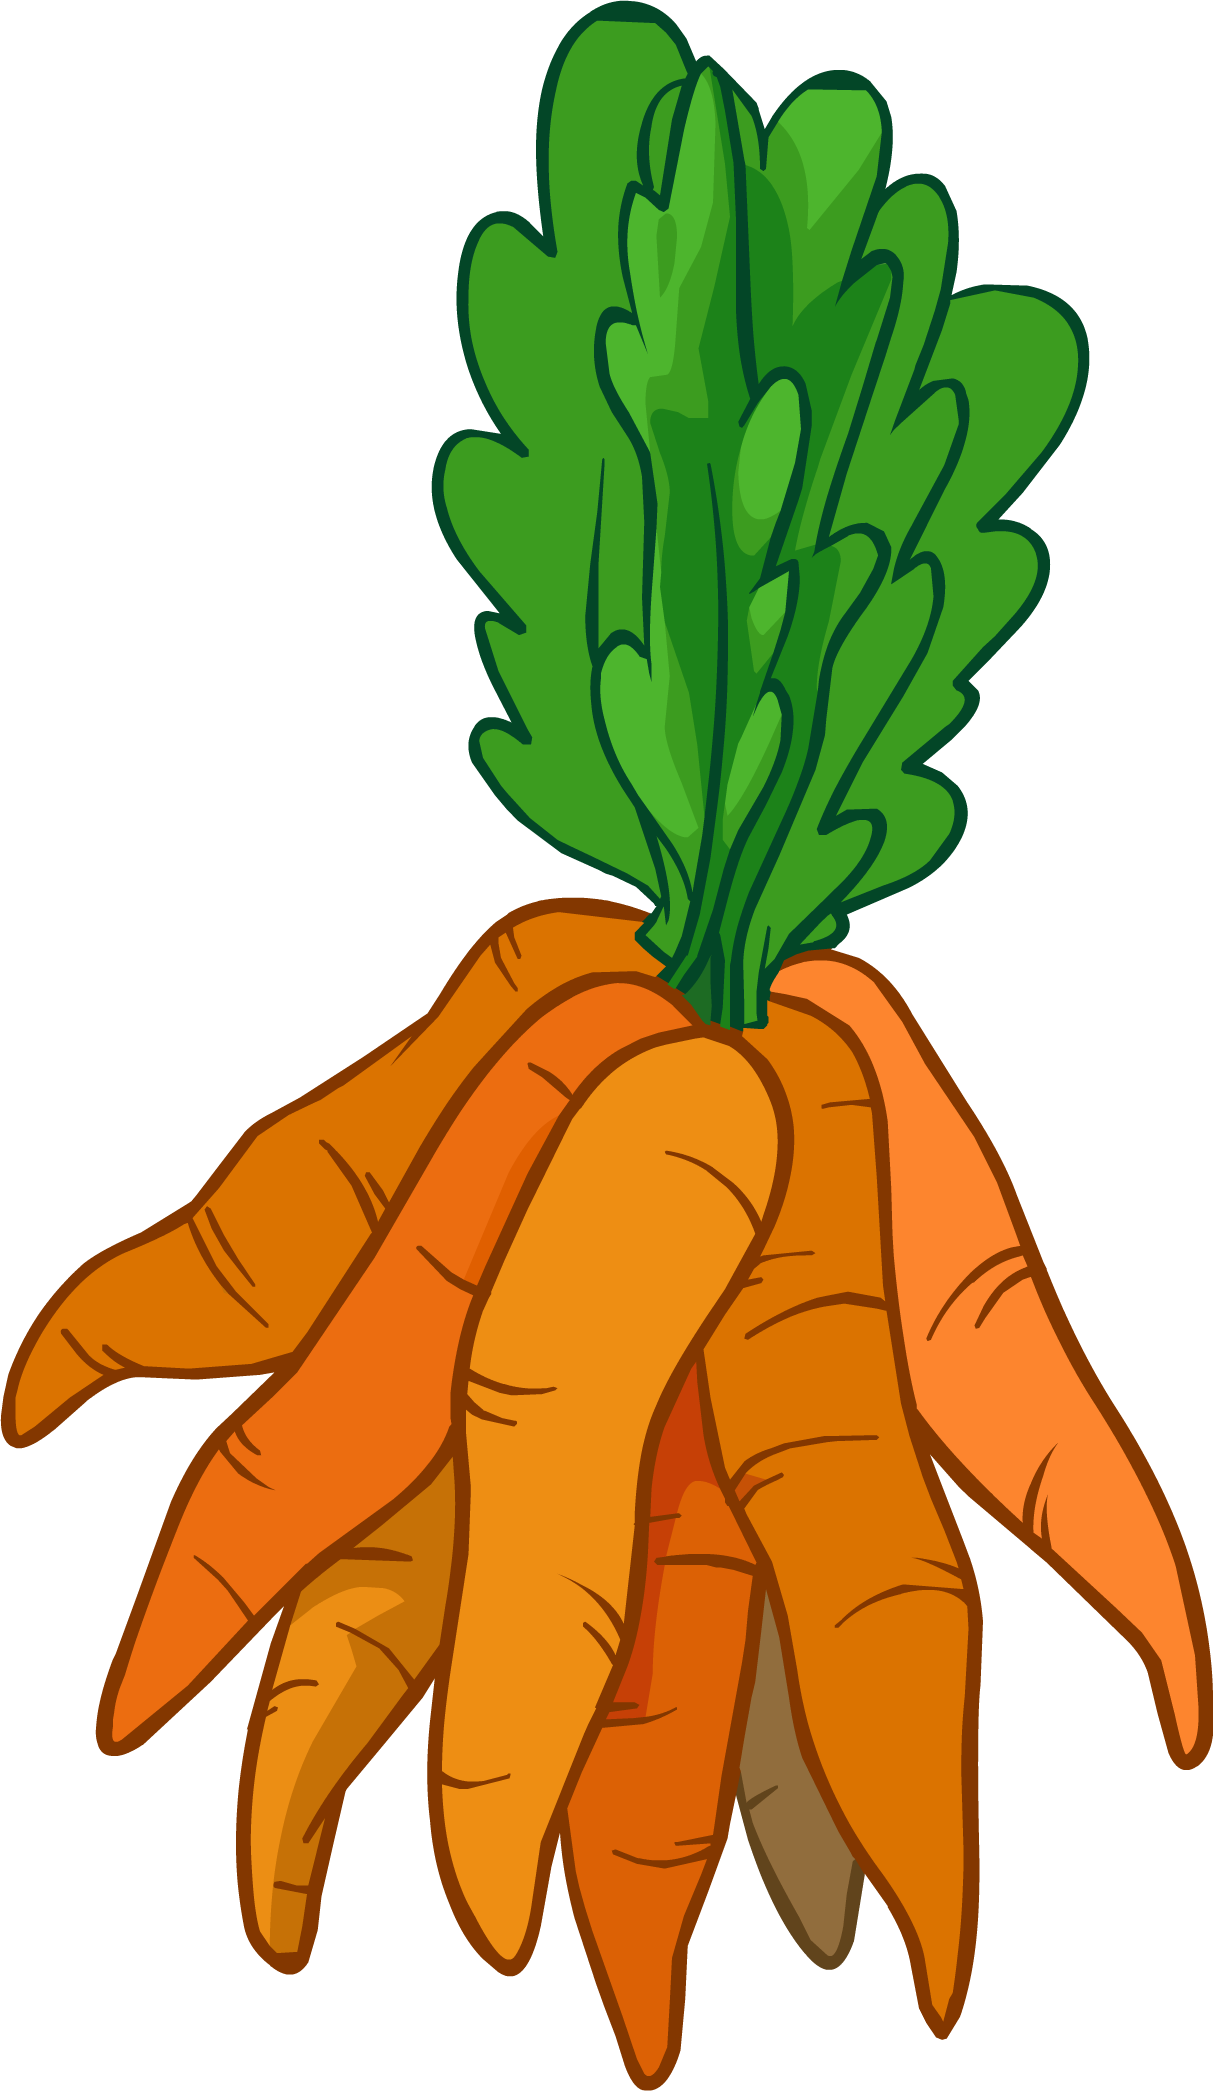 download Image reindeer carrots icon. Carrot clipart file.